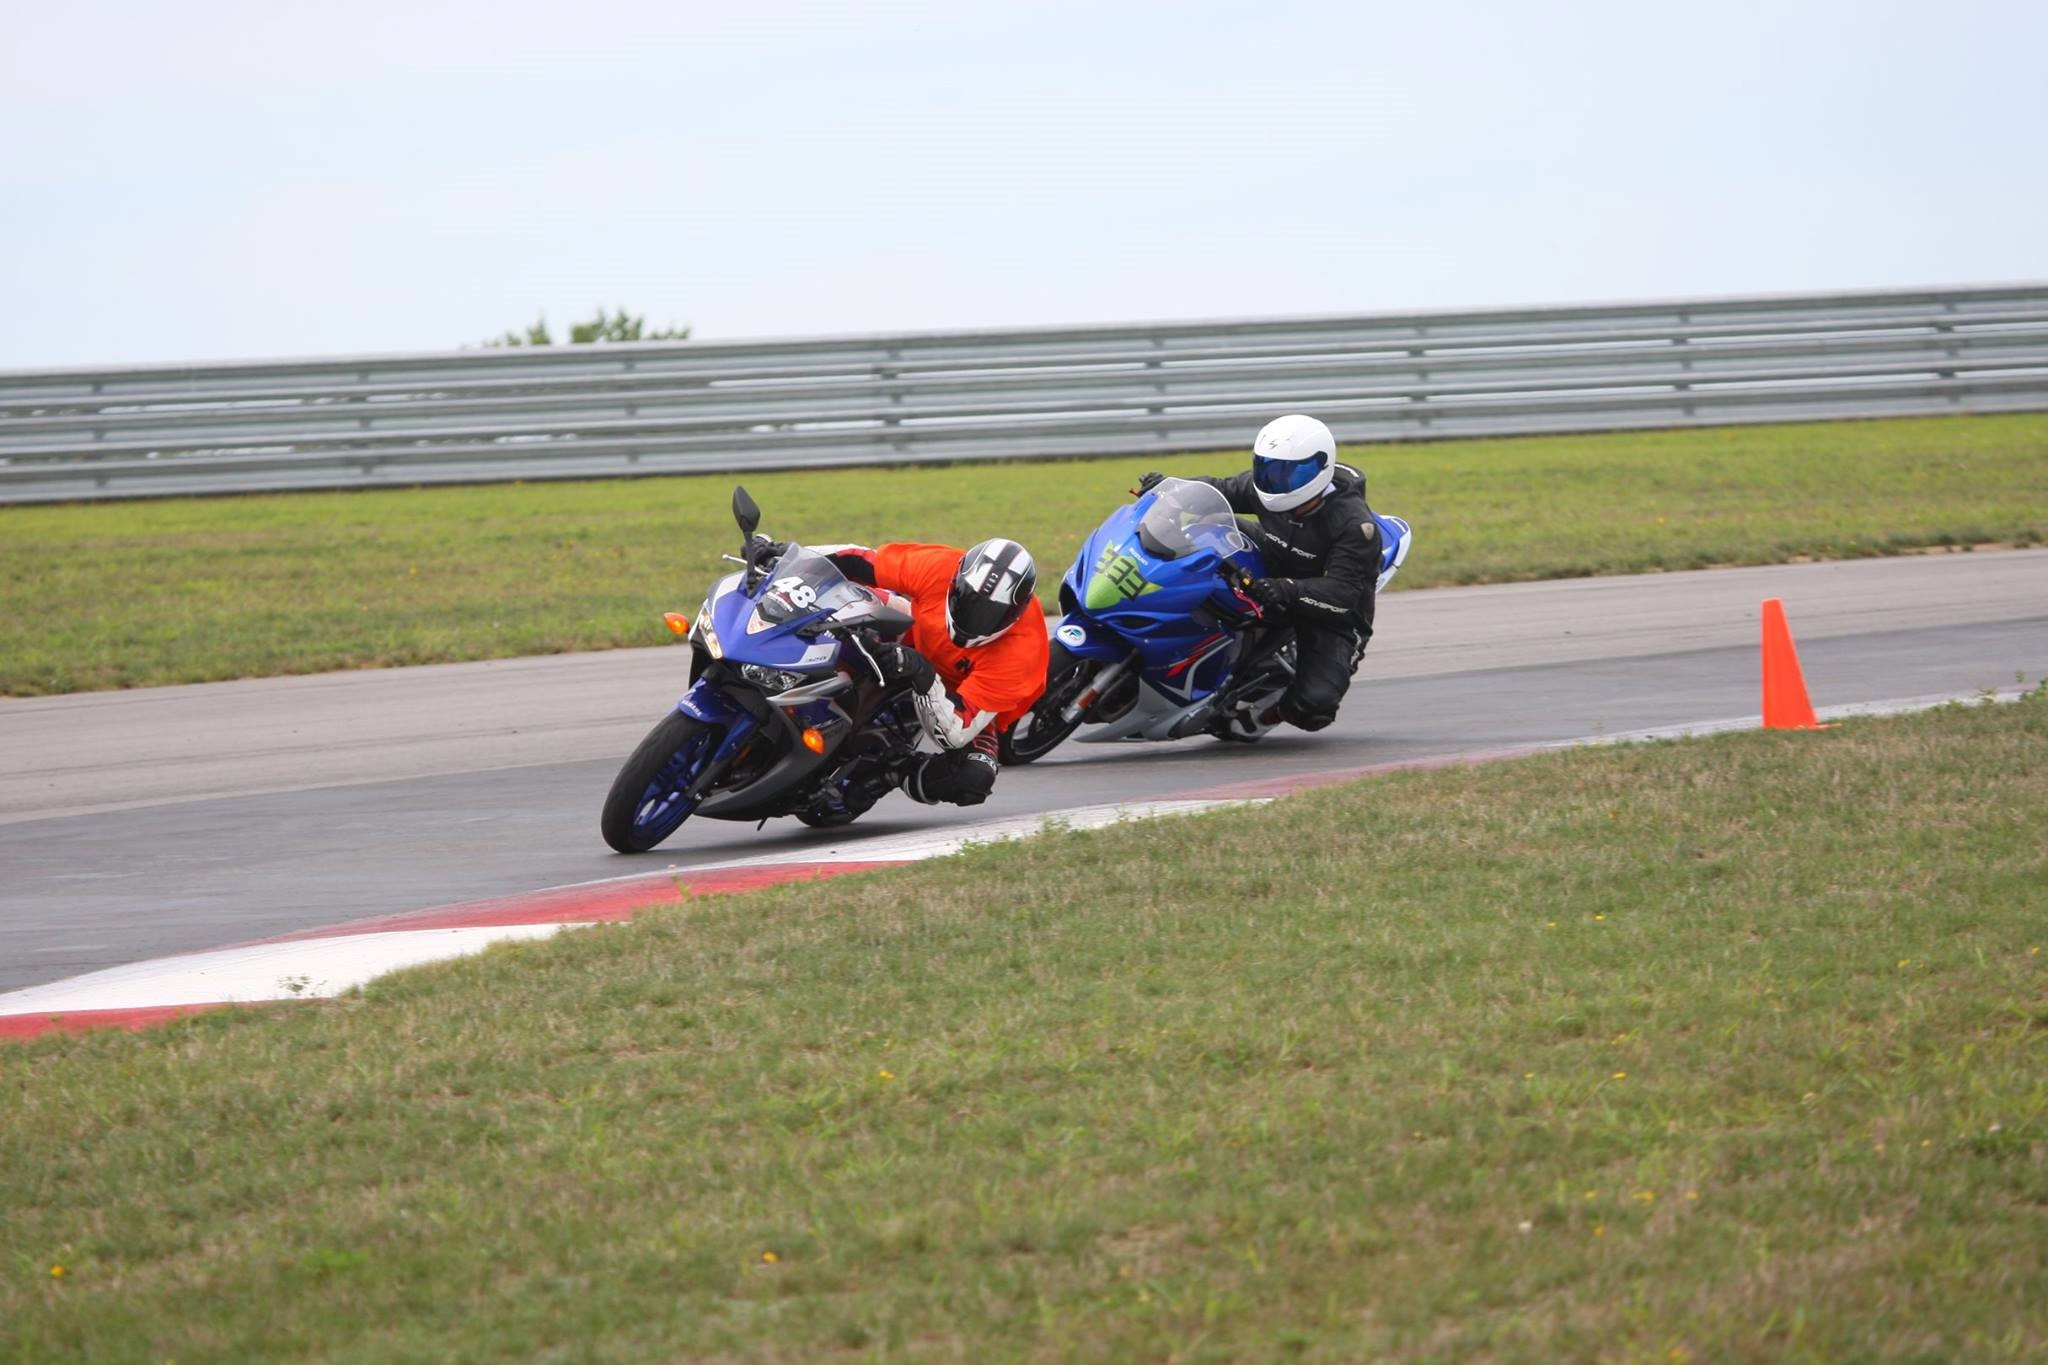 Can you guess who's faster? R3 vs Hayabusa